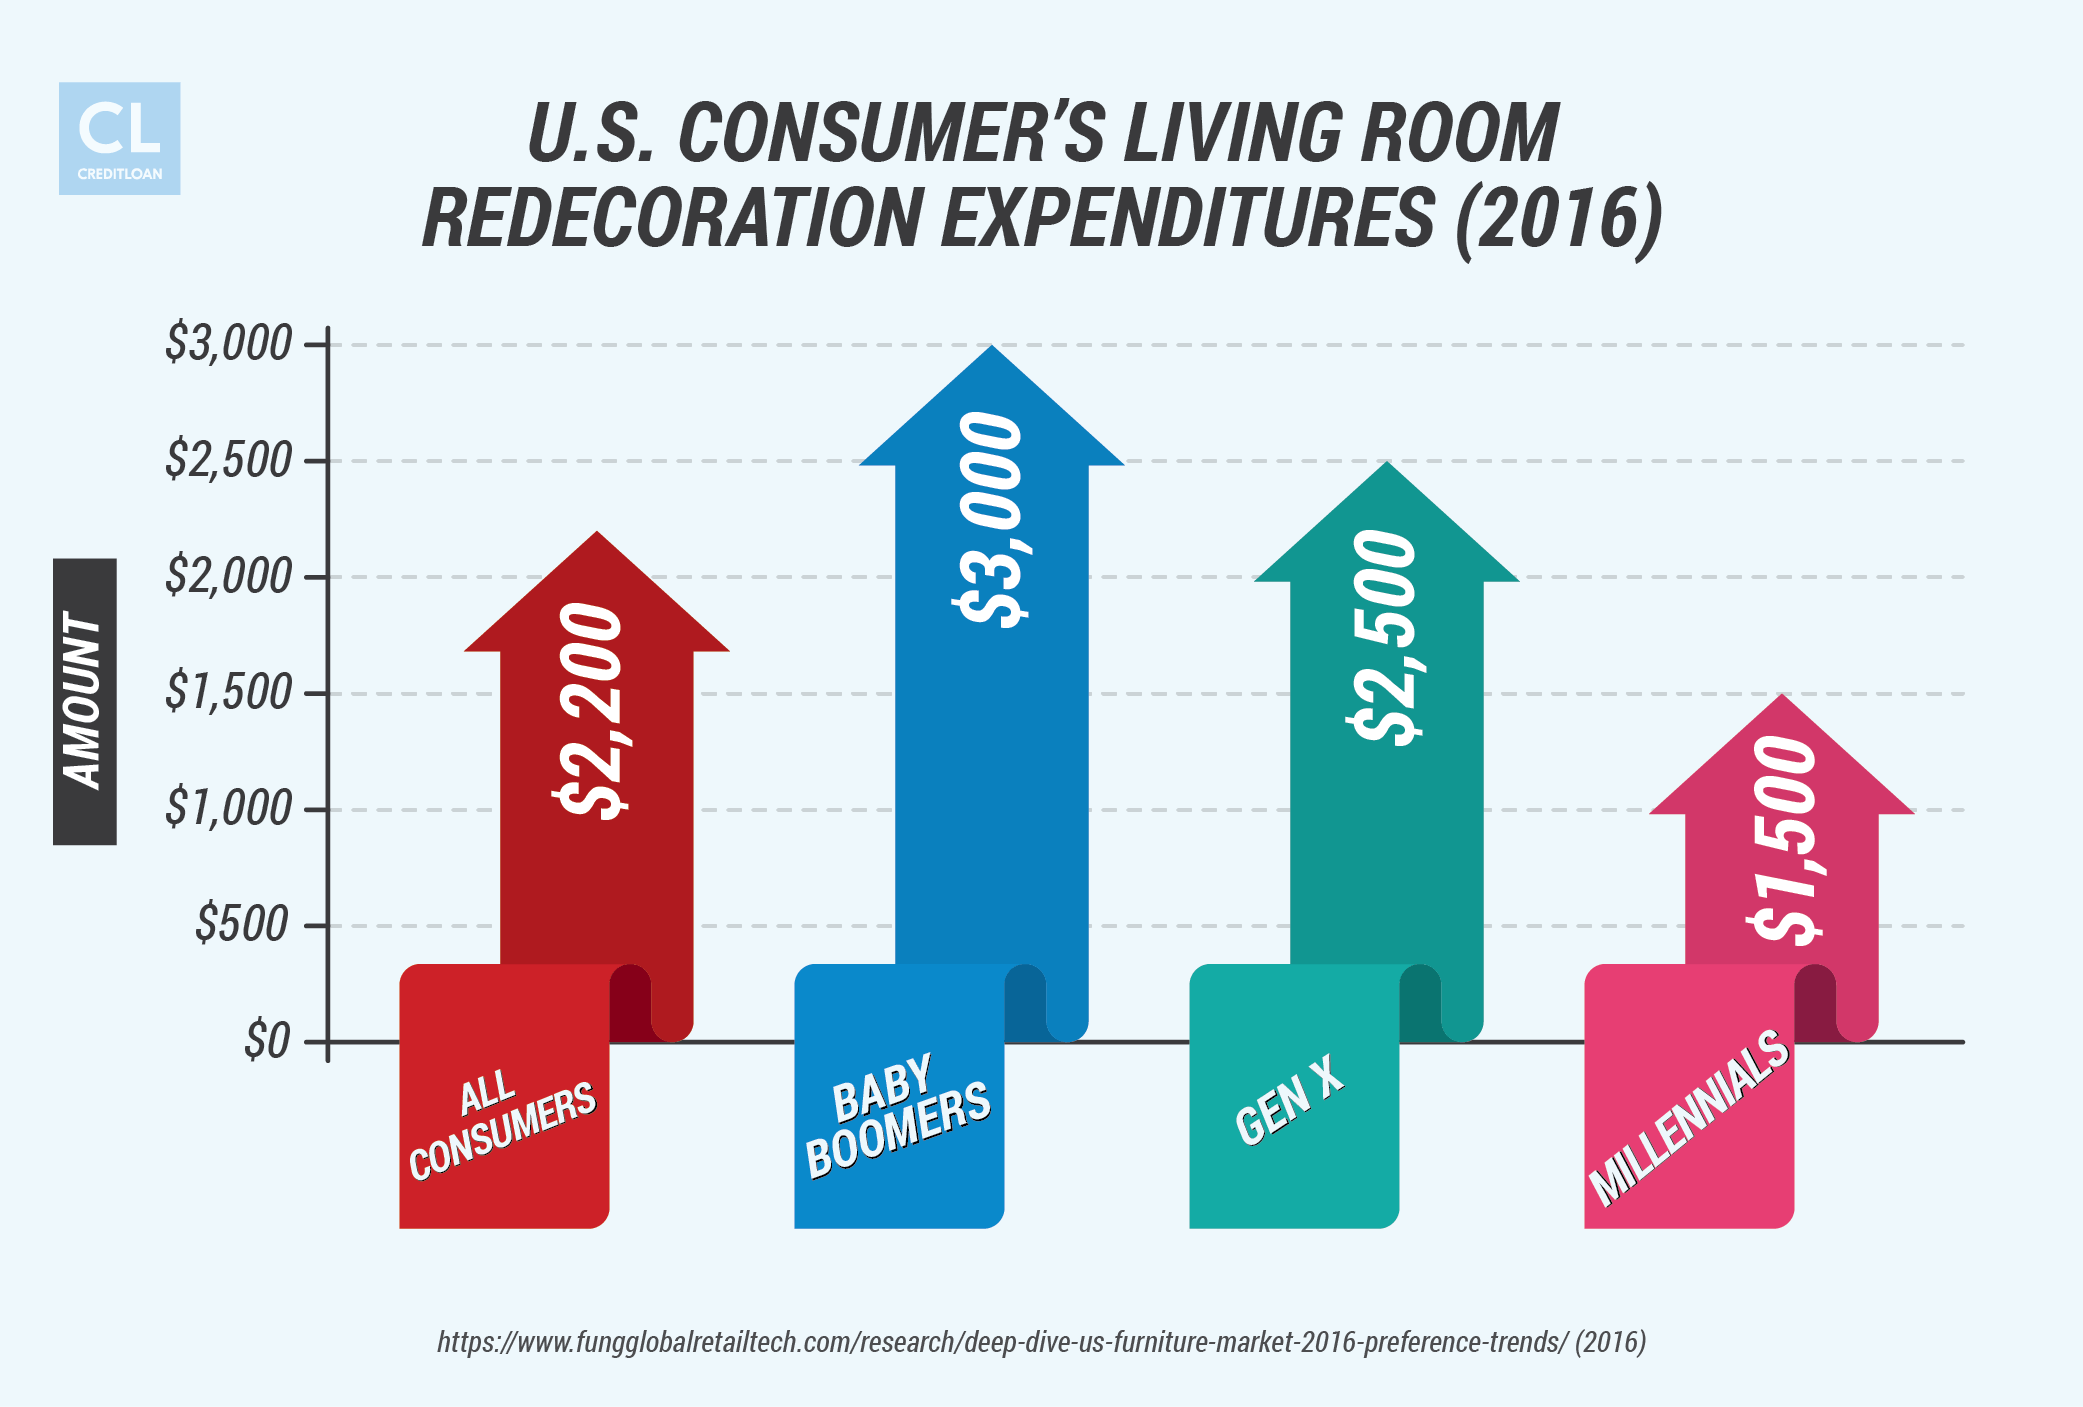 Amount U..S. Consumers Spend for Living Room Redecoration in 2016